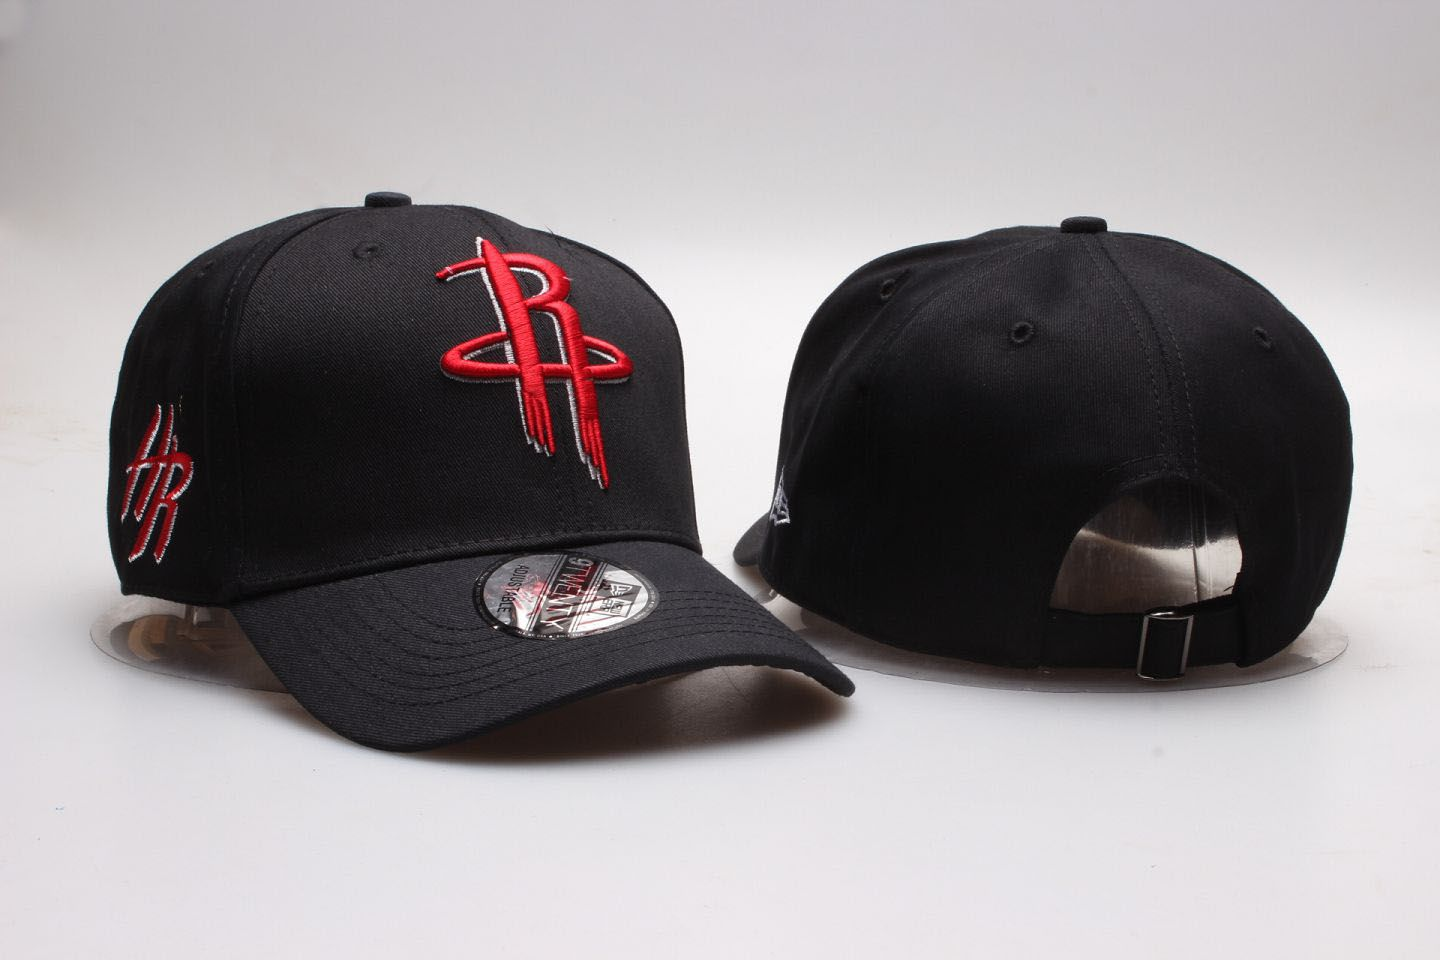 NBA Houston Rockets Snapback hat 20181125